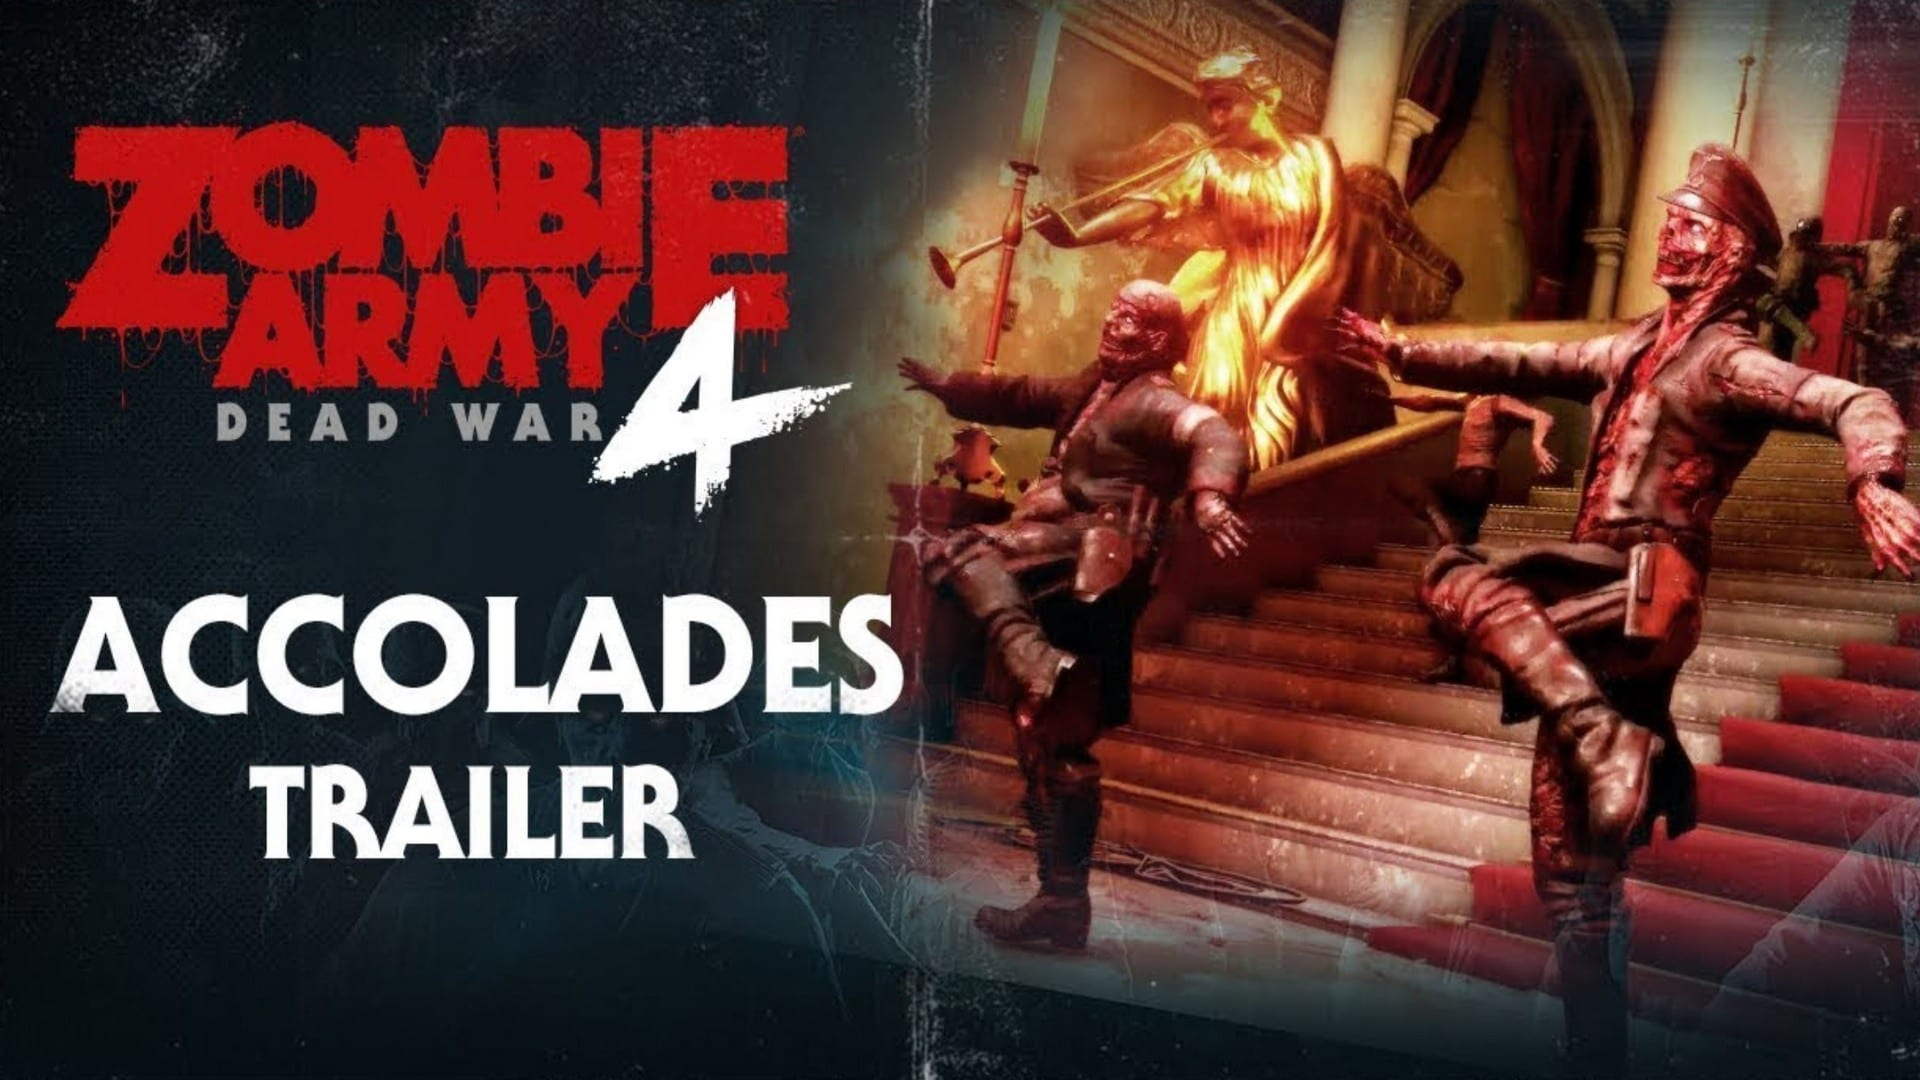 Zombie Army 4 Accolades Trailer Presents the Boogie Monsters